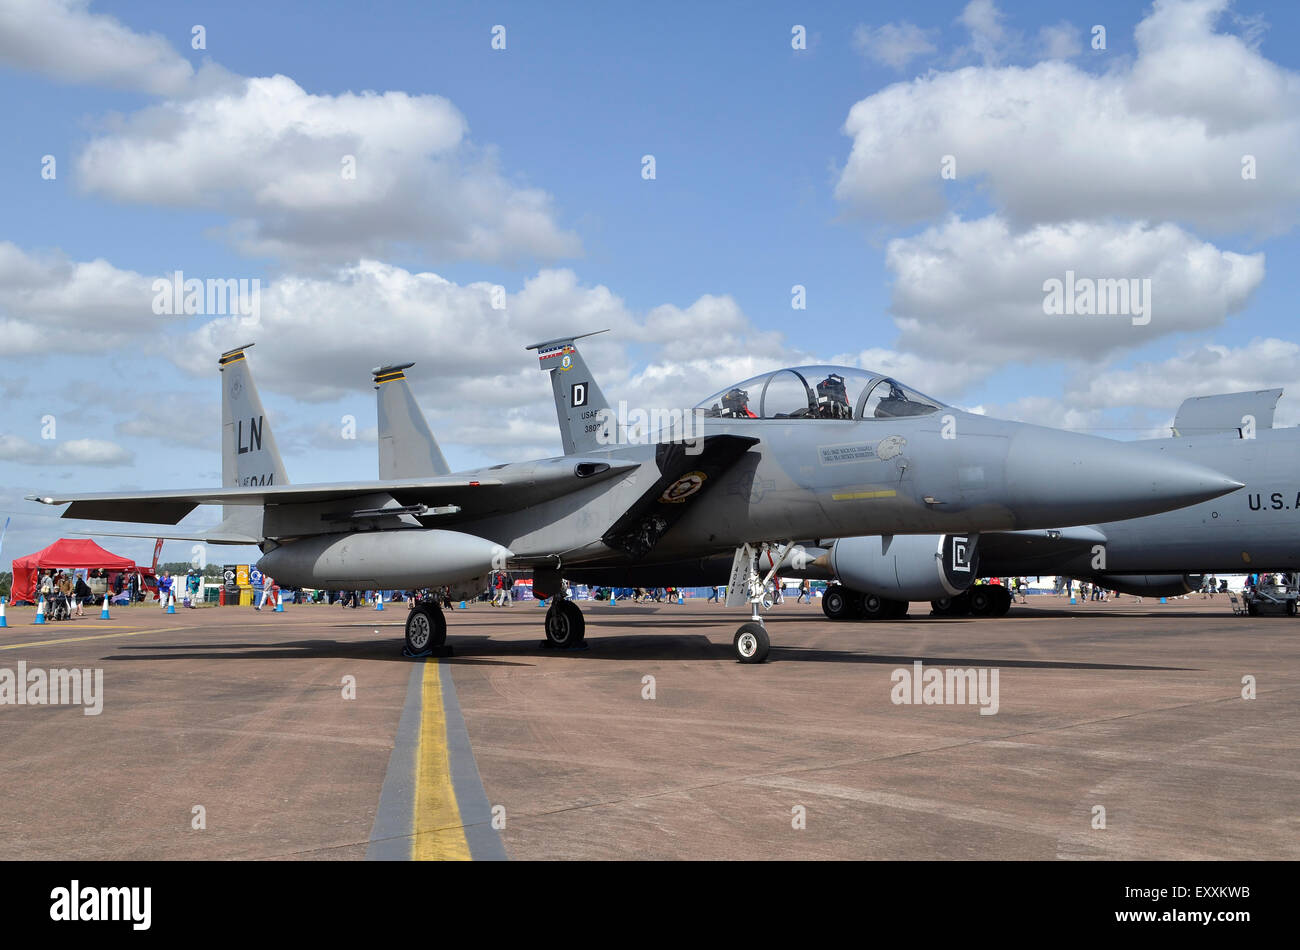 F-15C Eagle of the US Air Force on display at RIAT 2015, Fairford, UK. Credit:  Antony Nettle/Alamy Live News - Stock Image